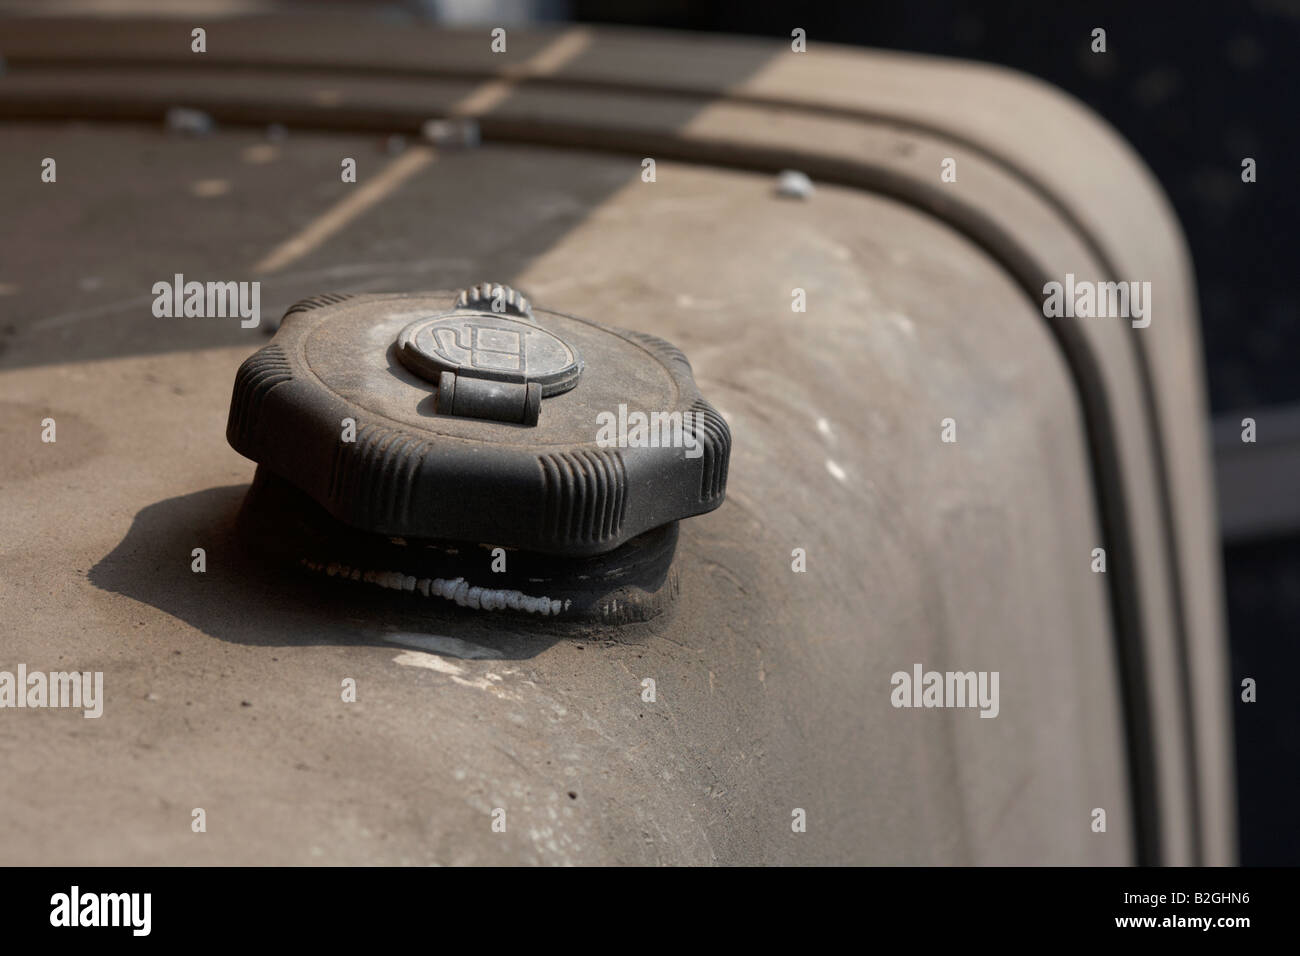 fuel filler cap on a large diesel tank attached to a truck - Stock Image